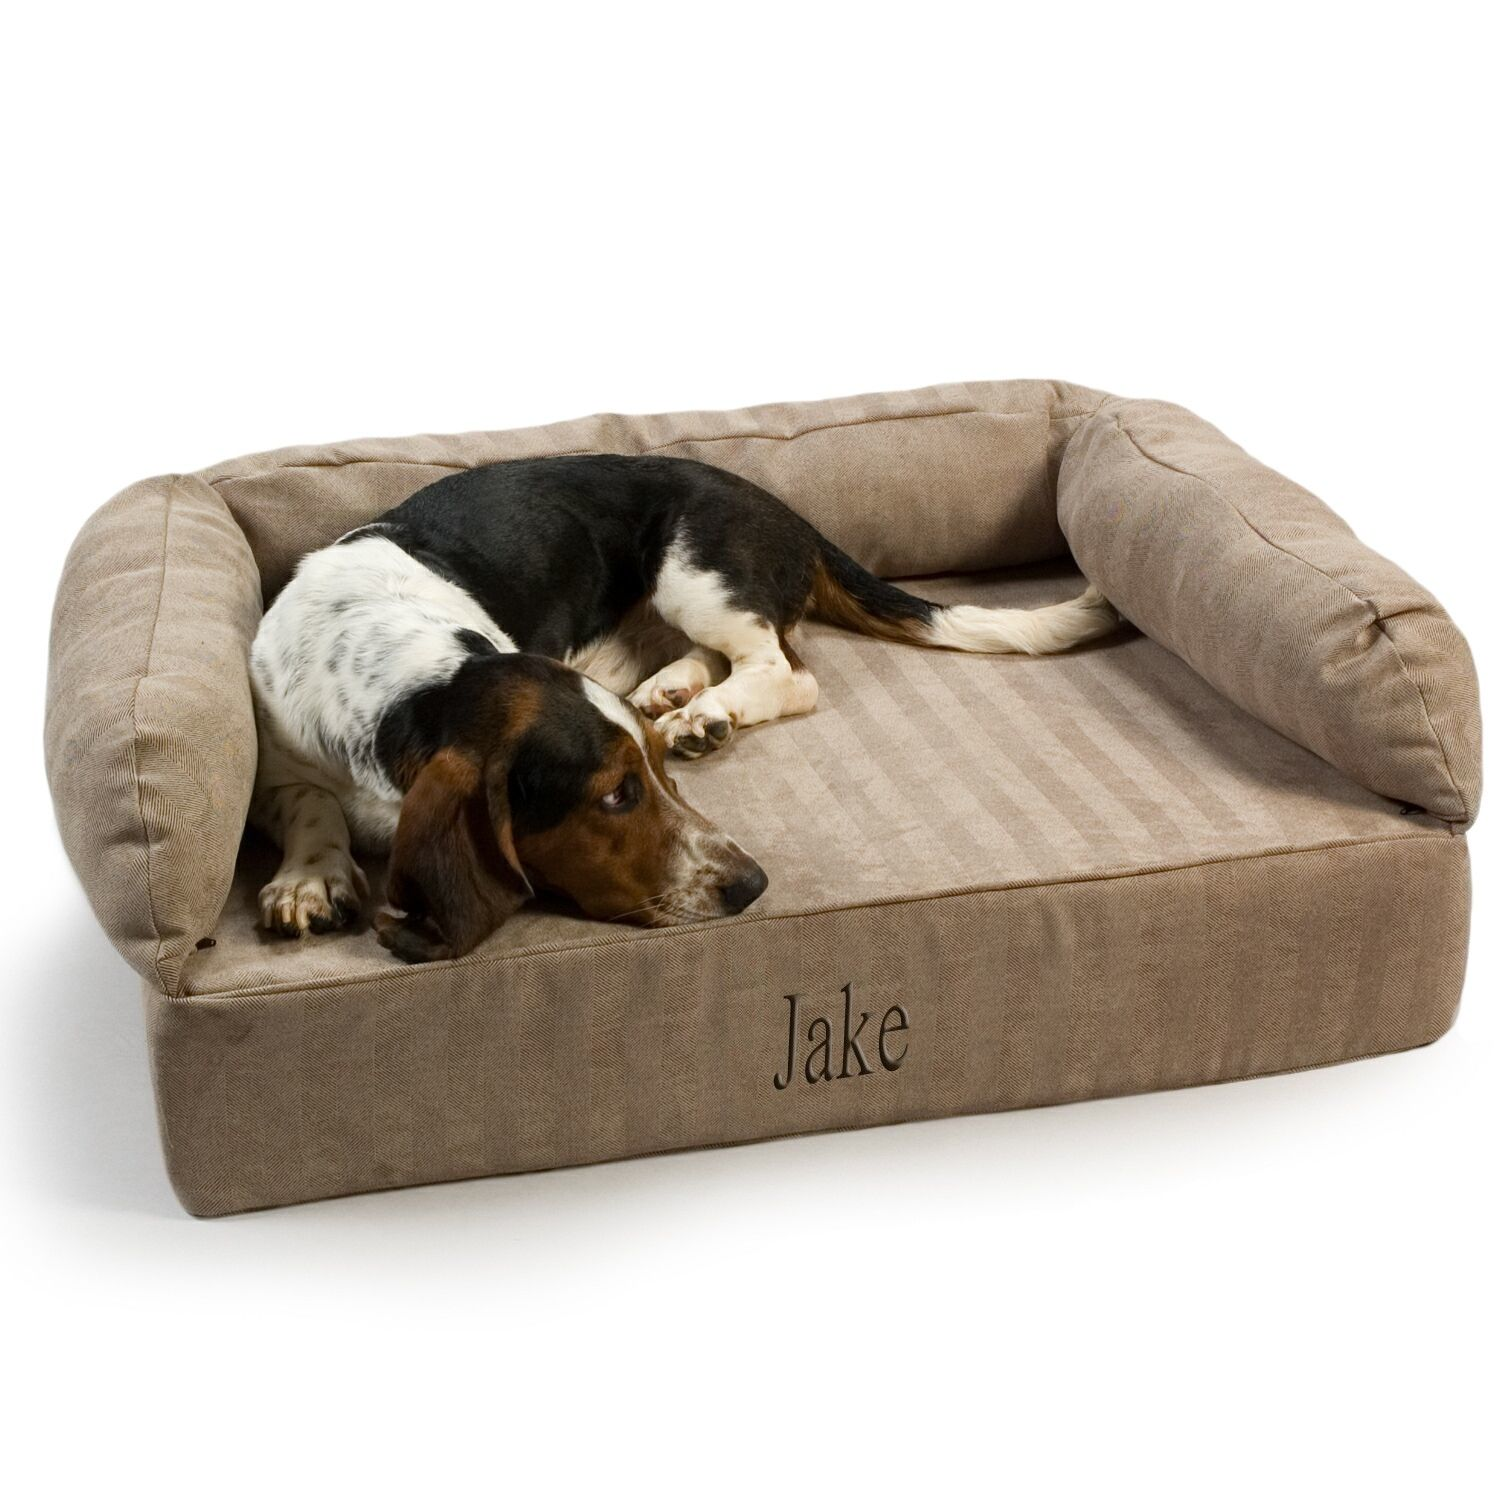 inspirational snoozer overstuffed sofa pet bed image-Lovely Snoozer Overstuffed sofa Pet Bed Ideas